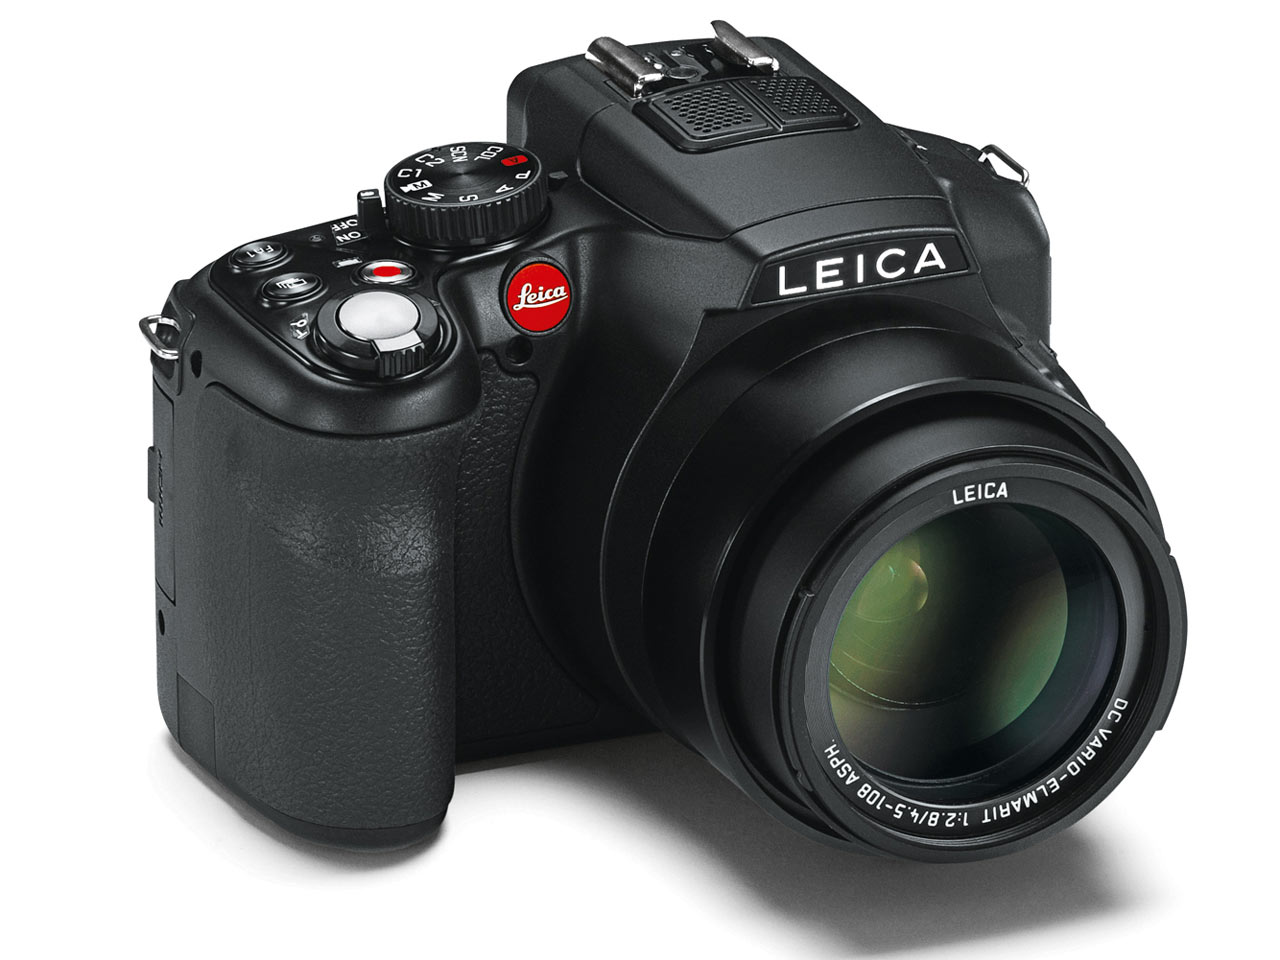 leica-v-lux2-super-zoom-digital-camera